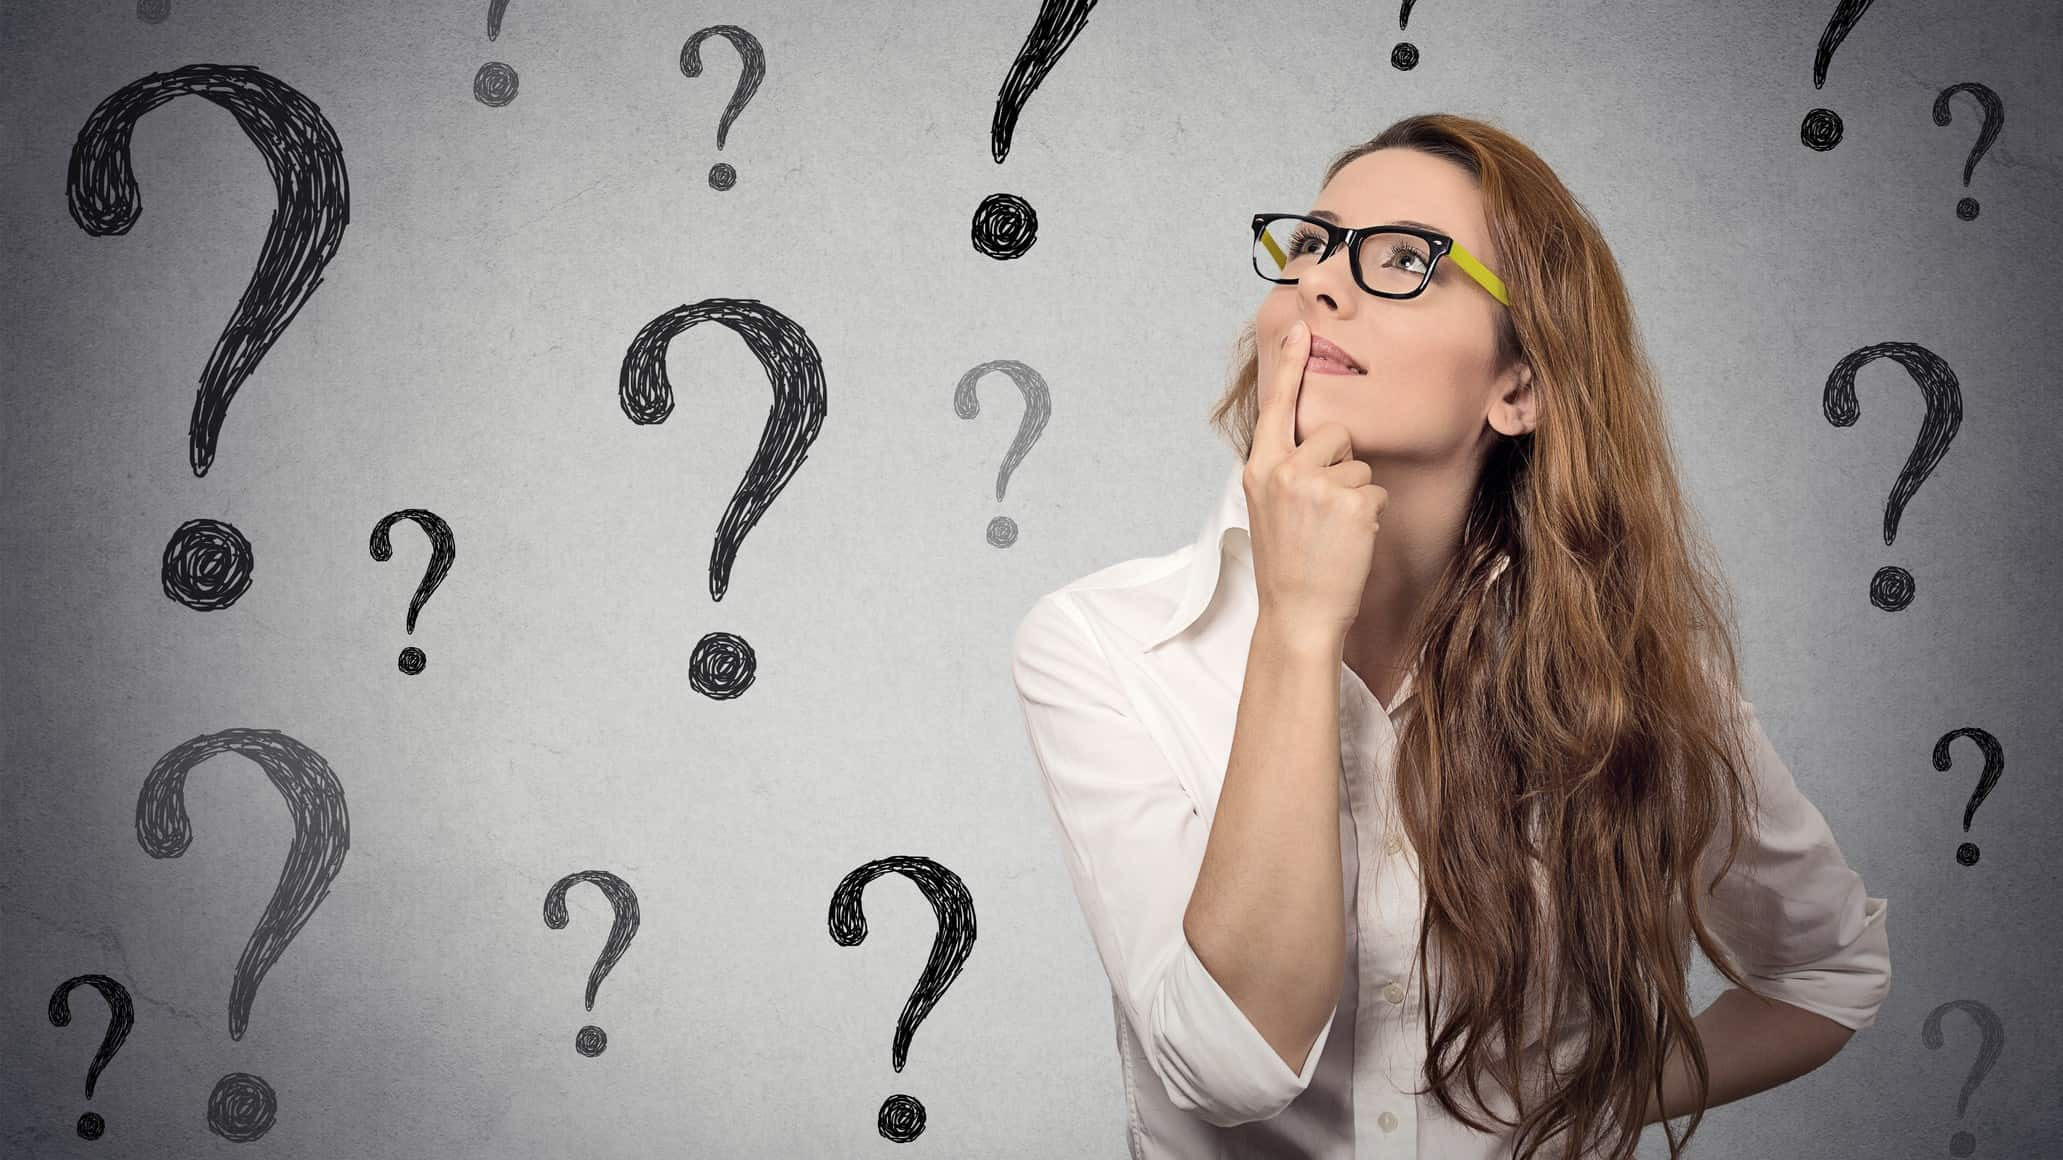 a woman holds her hand to her chin and looks skywards while she is thinking against a backdrop of graphic question marks